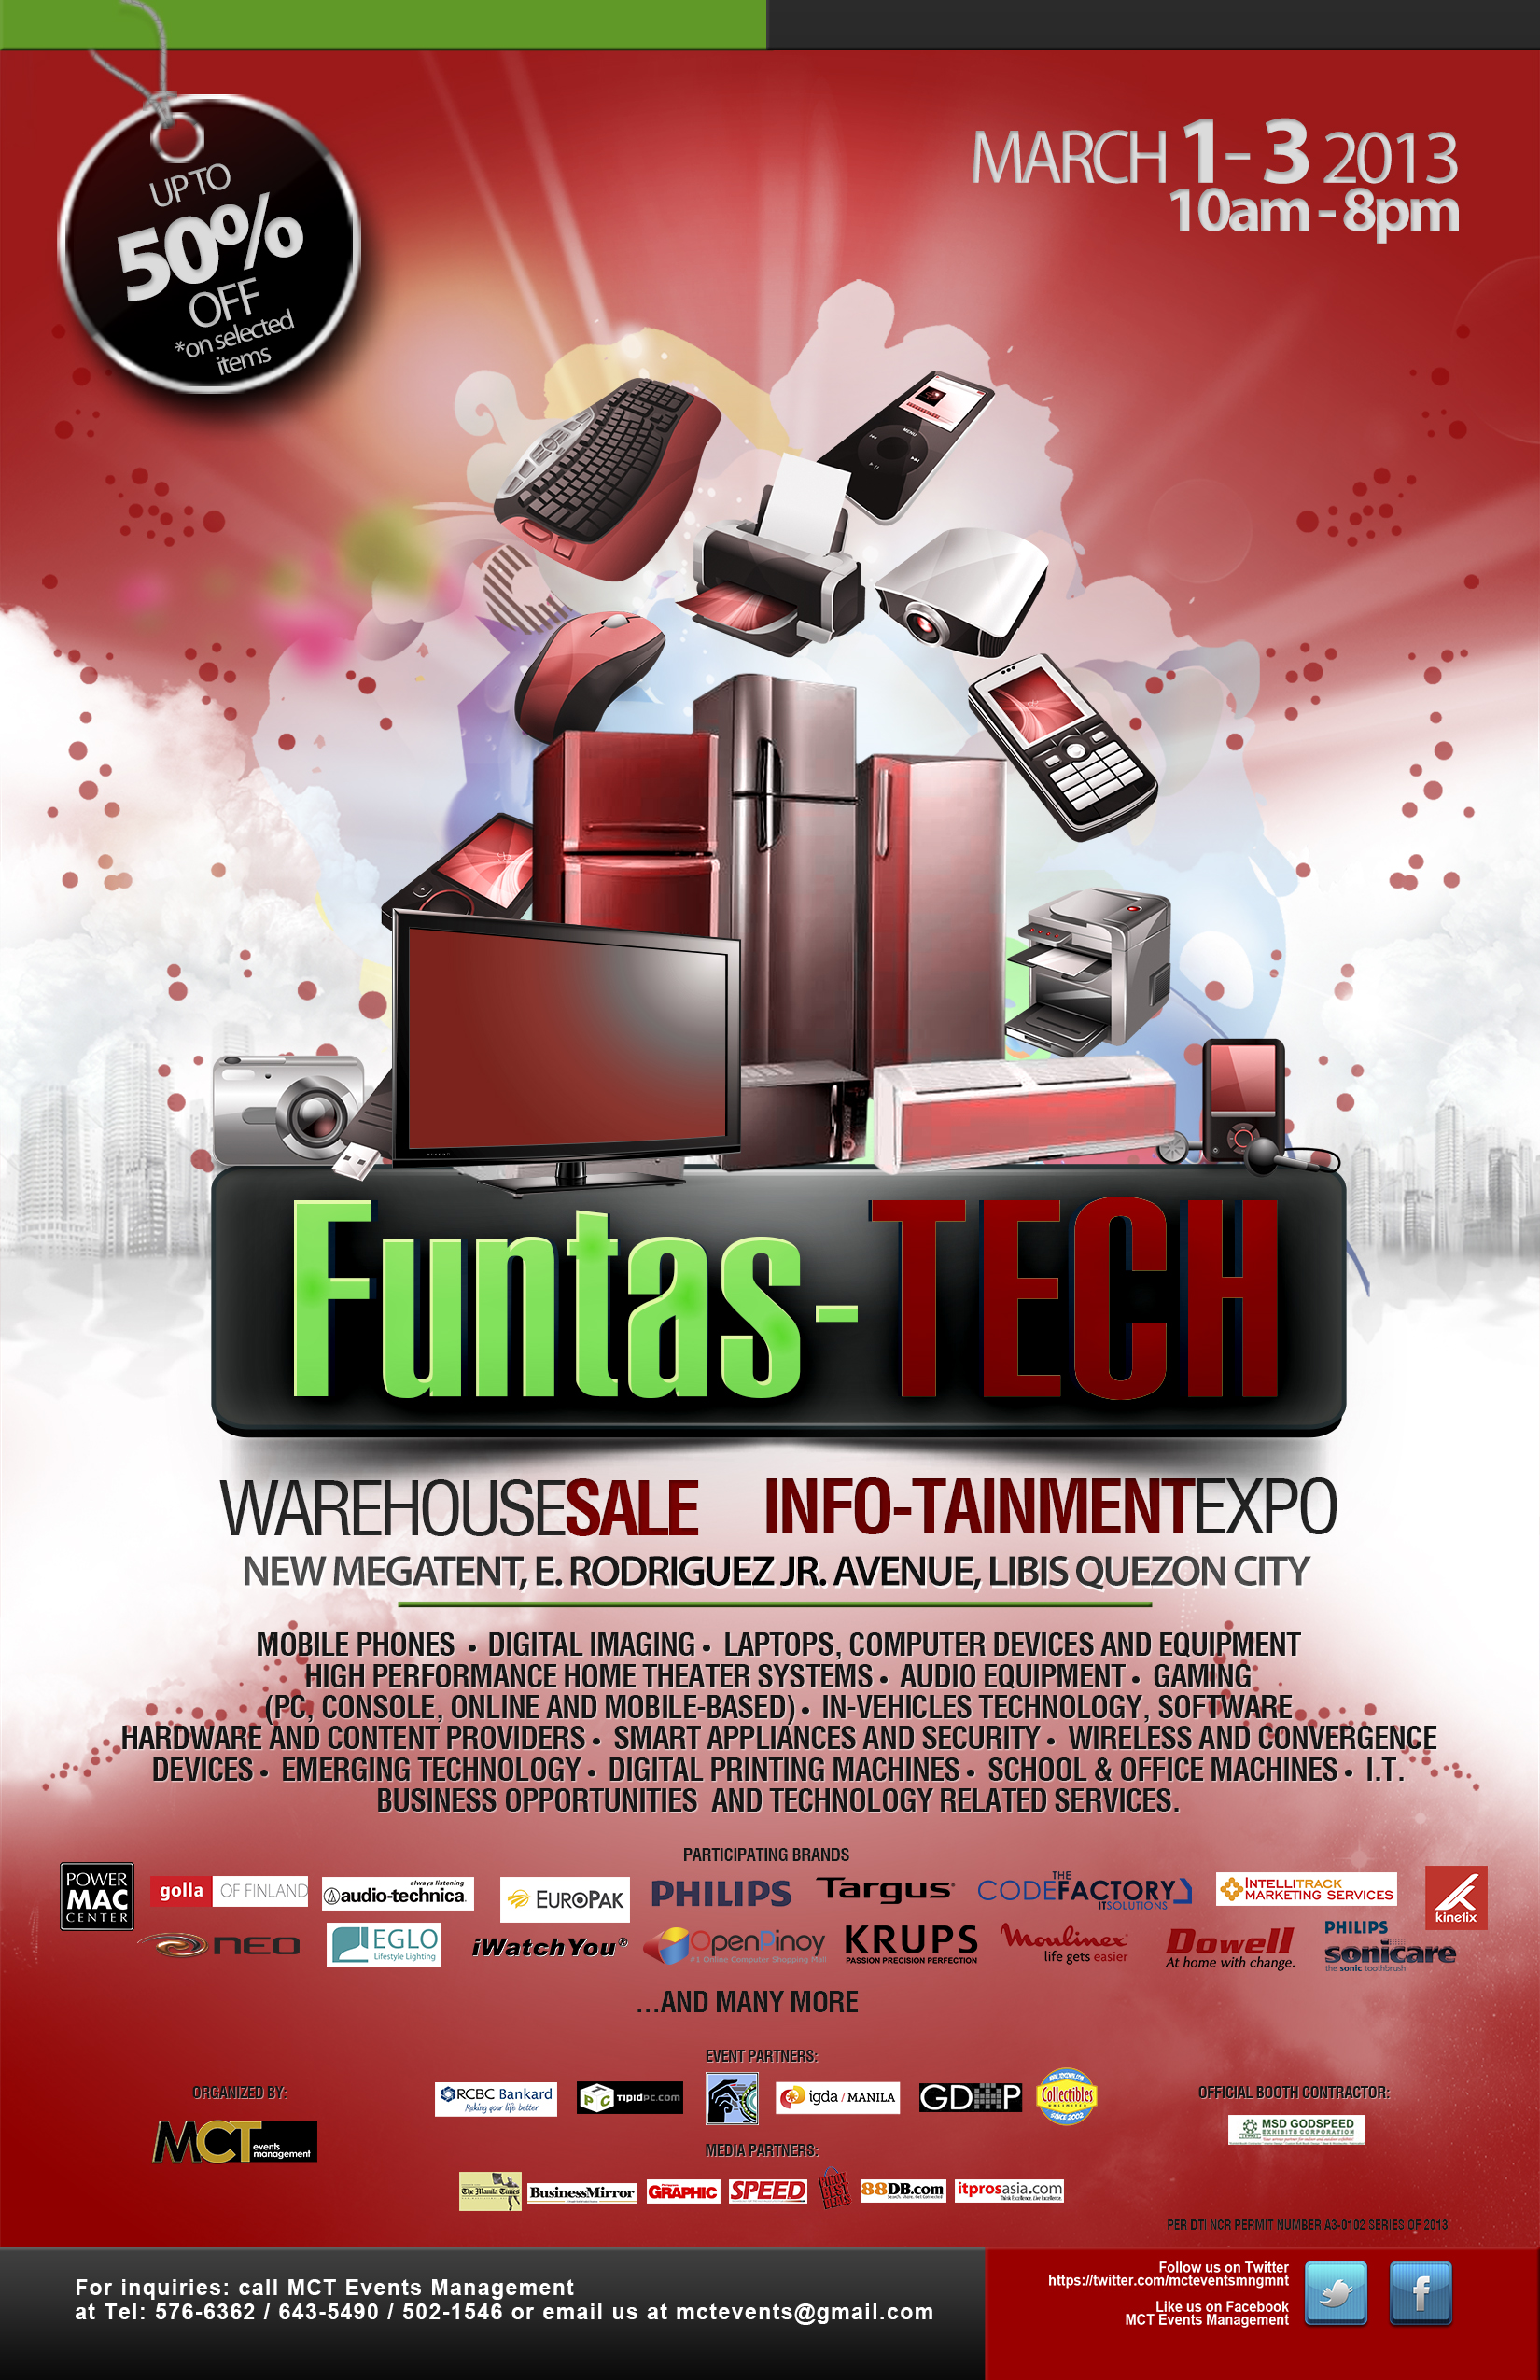 Funtas-TECH Sale and Info-tainment Expo: Win Free Tickets Here!